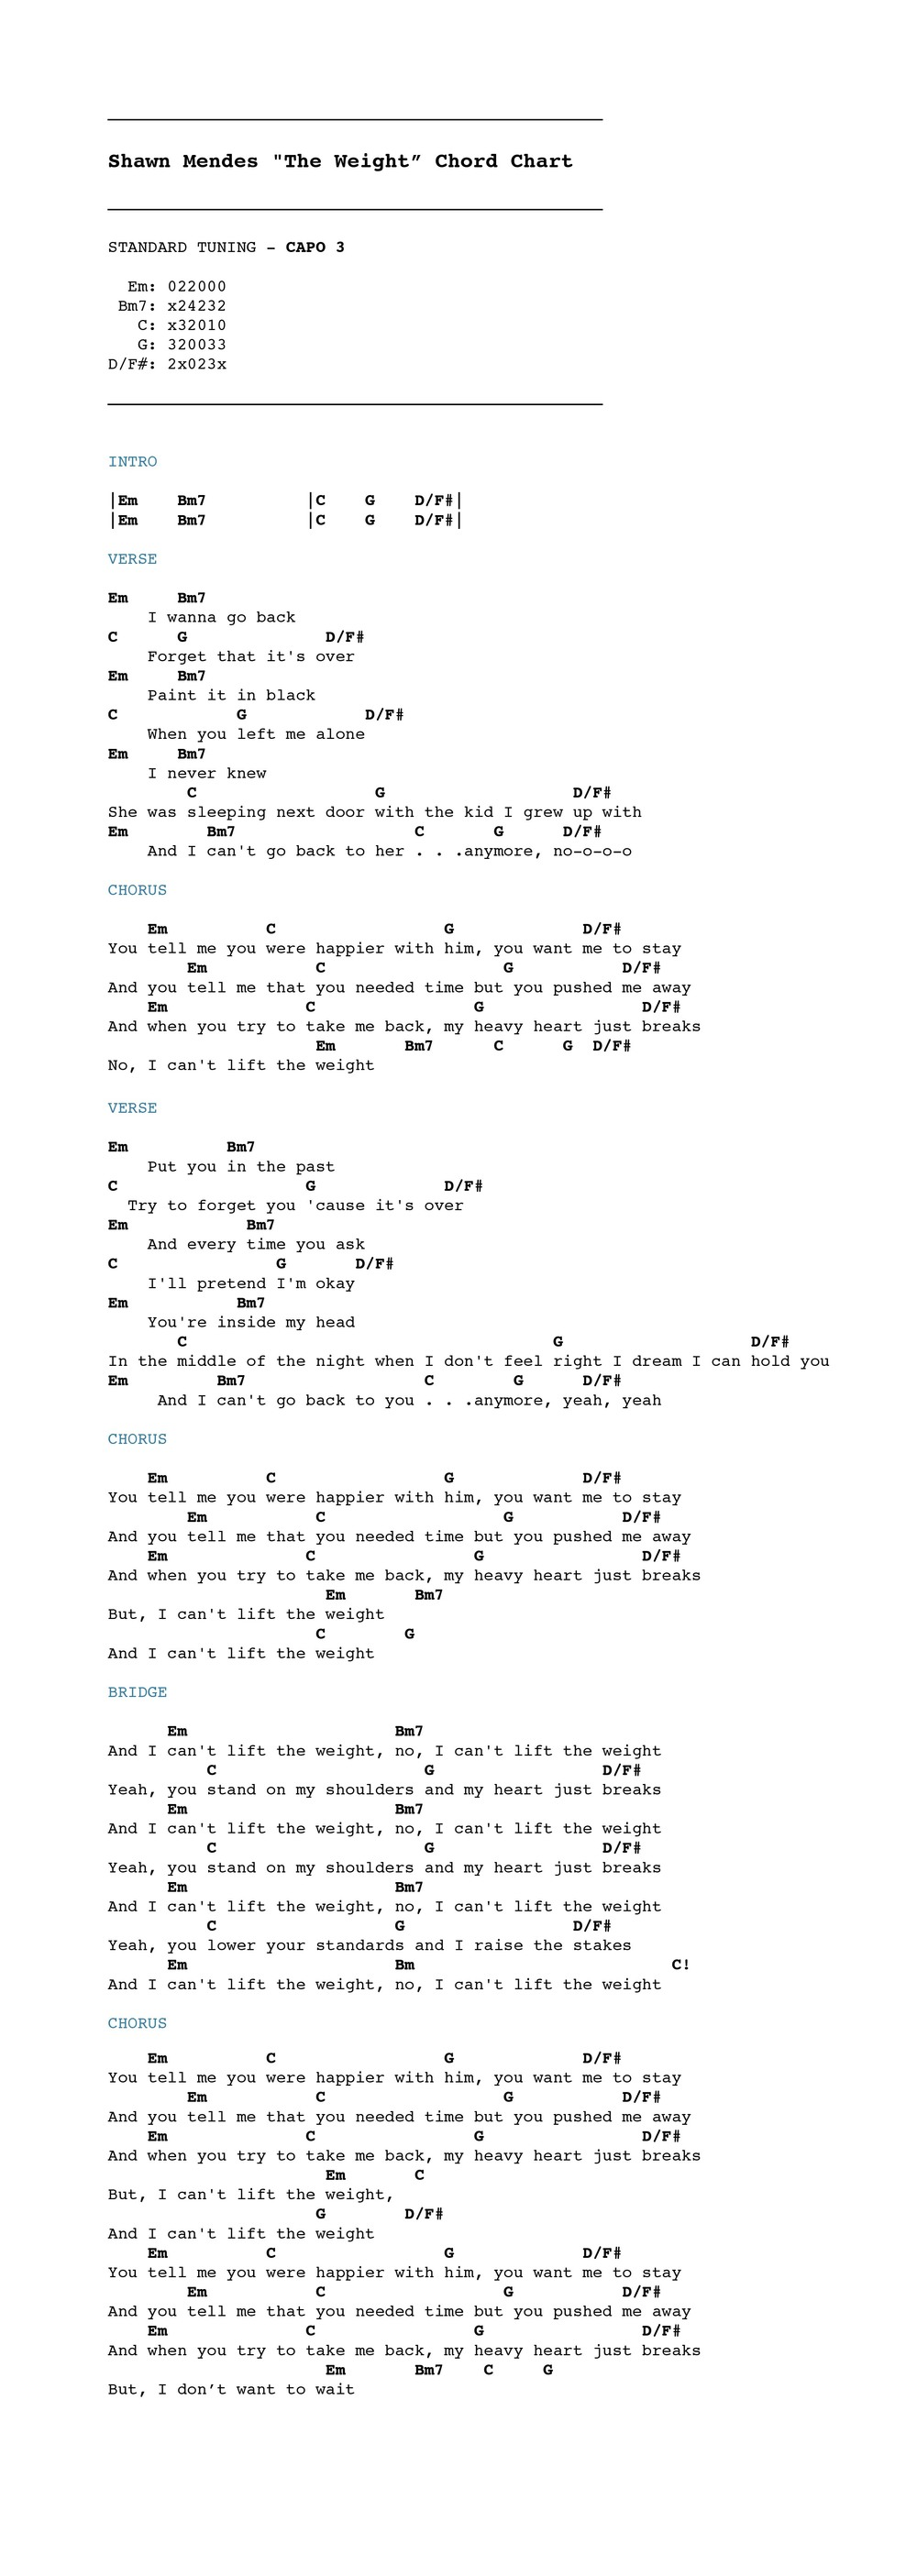 Shawn mendes the weight chordistry ill teach you all the other chords and strum patterns in the video too and you can use the chord chart below to sing and play along enjoy hexwebz Choice Image